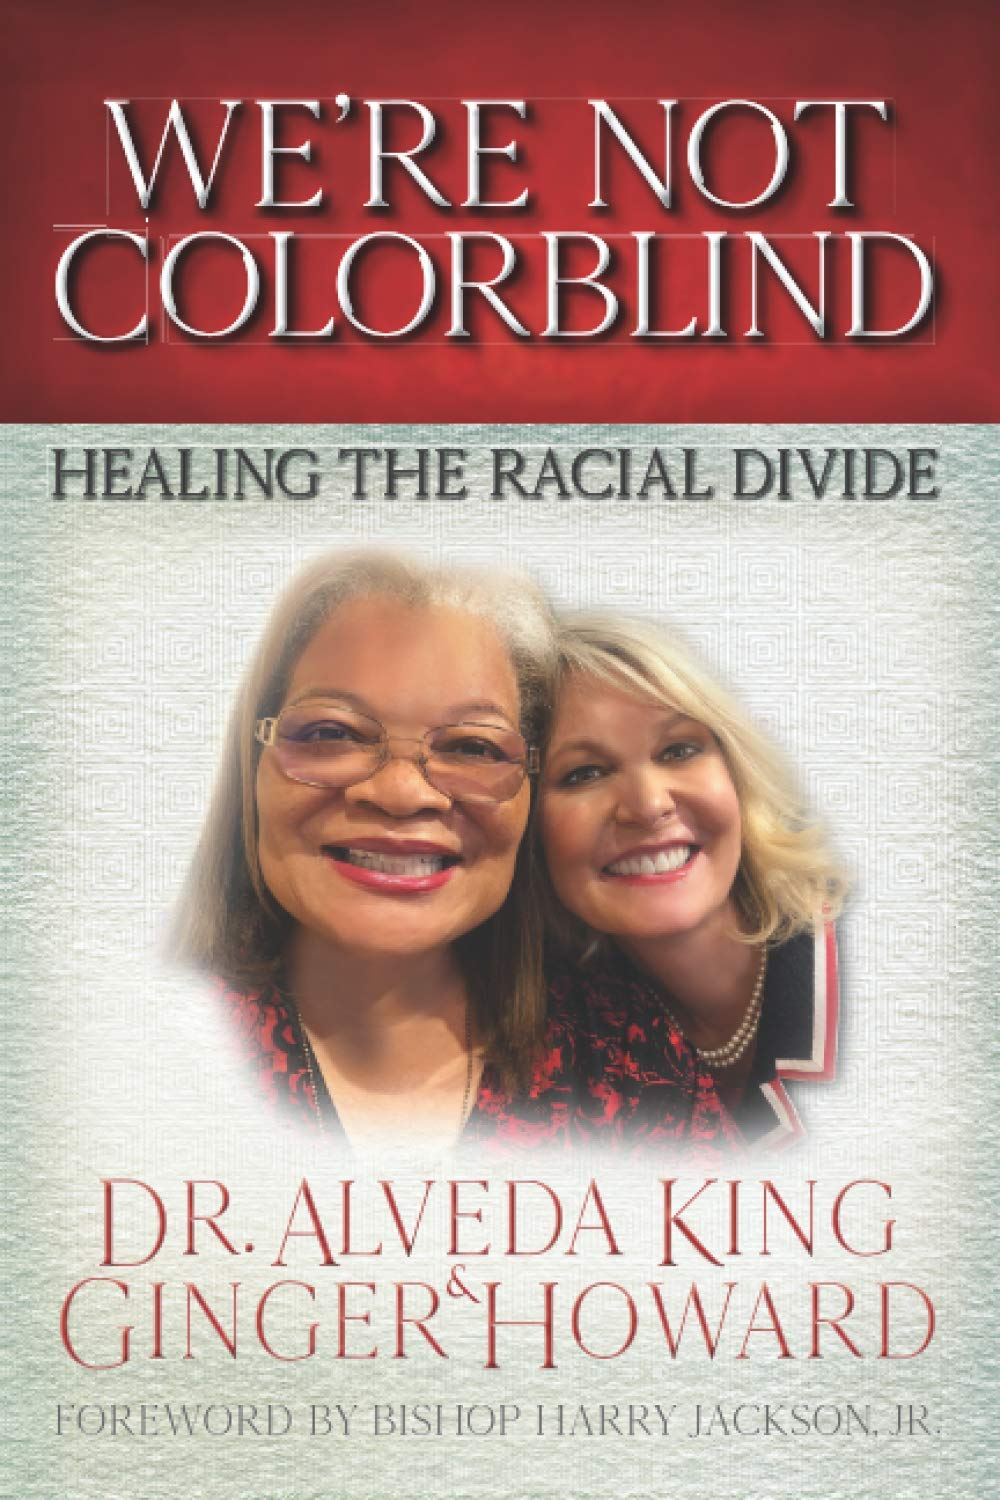 Alveda King, RNC Committeewoman Ginger Howard Release New Book 'We're Not Colorblind: Healing the Racial Divide""